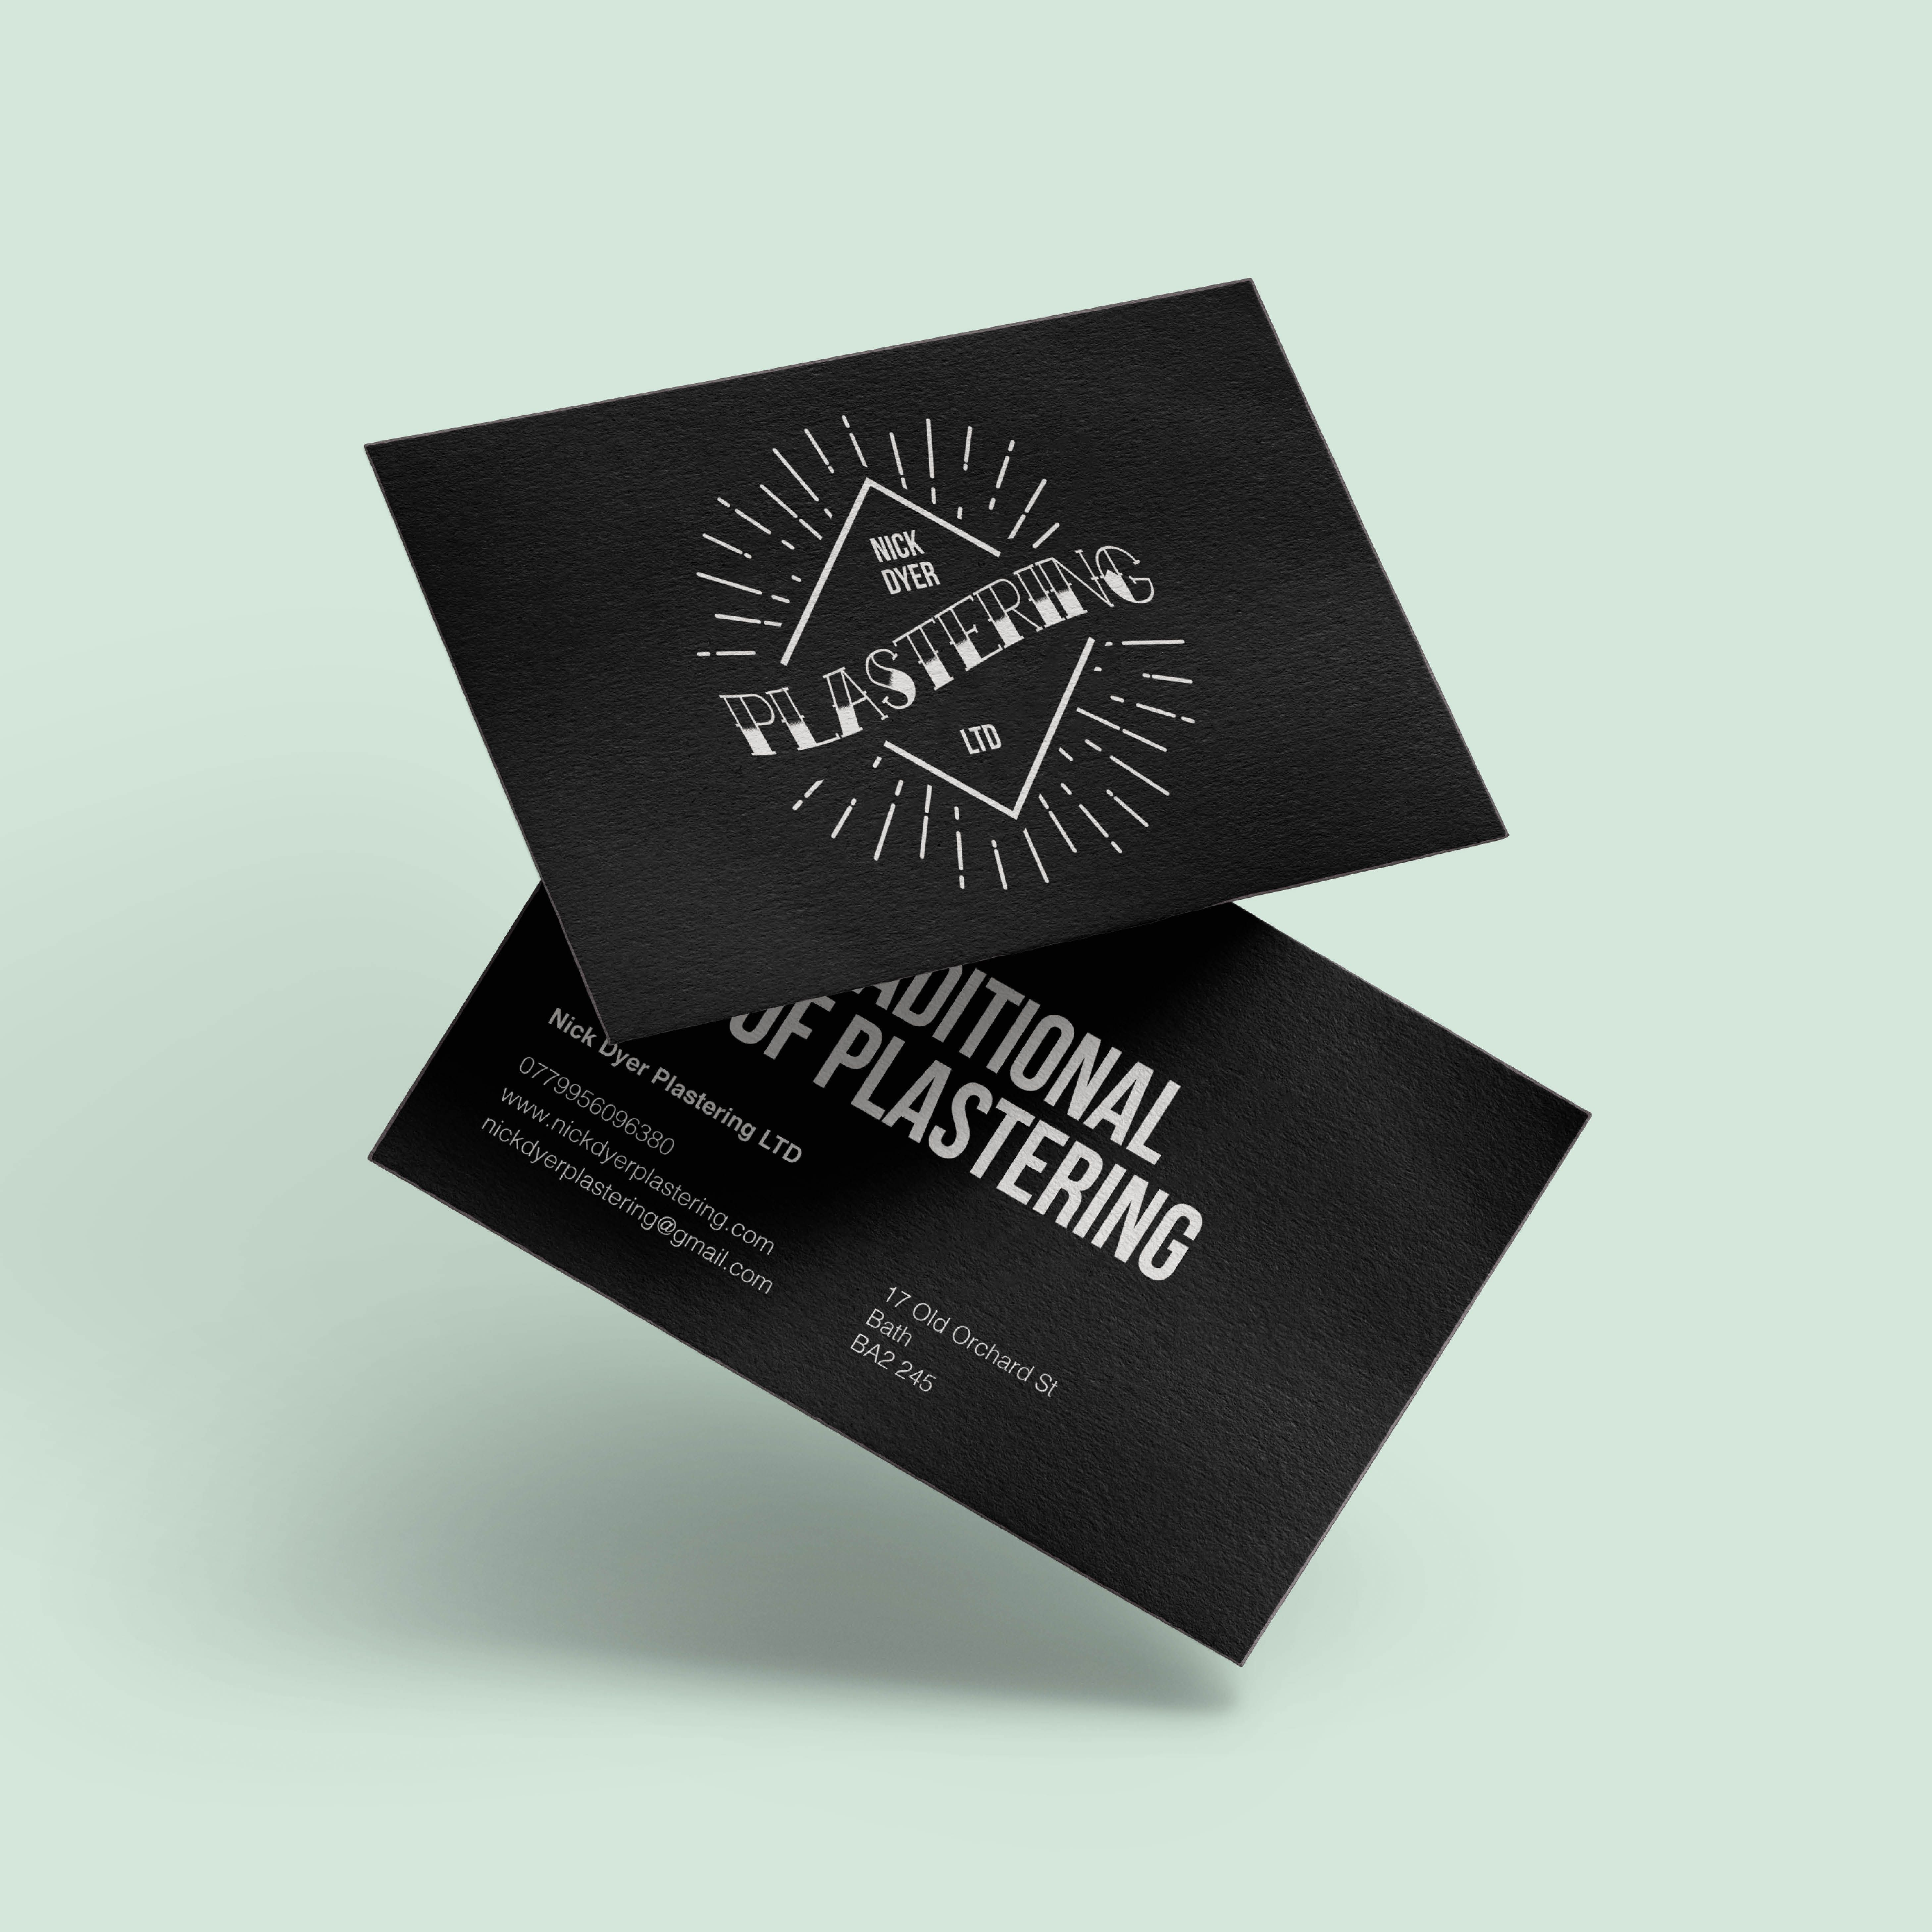 Nick Dyer Plastering Createdjasmine With Plastering Business Cards Templates Cumed Org Card Template Free Business Card Templates Business Card Template